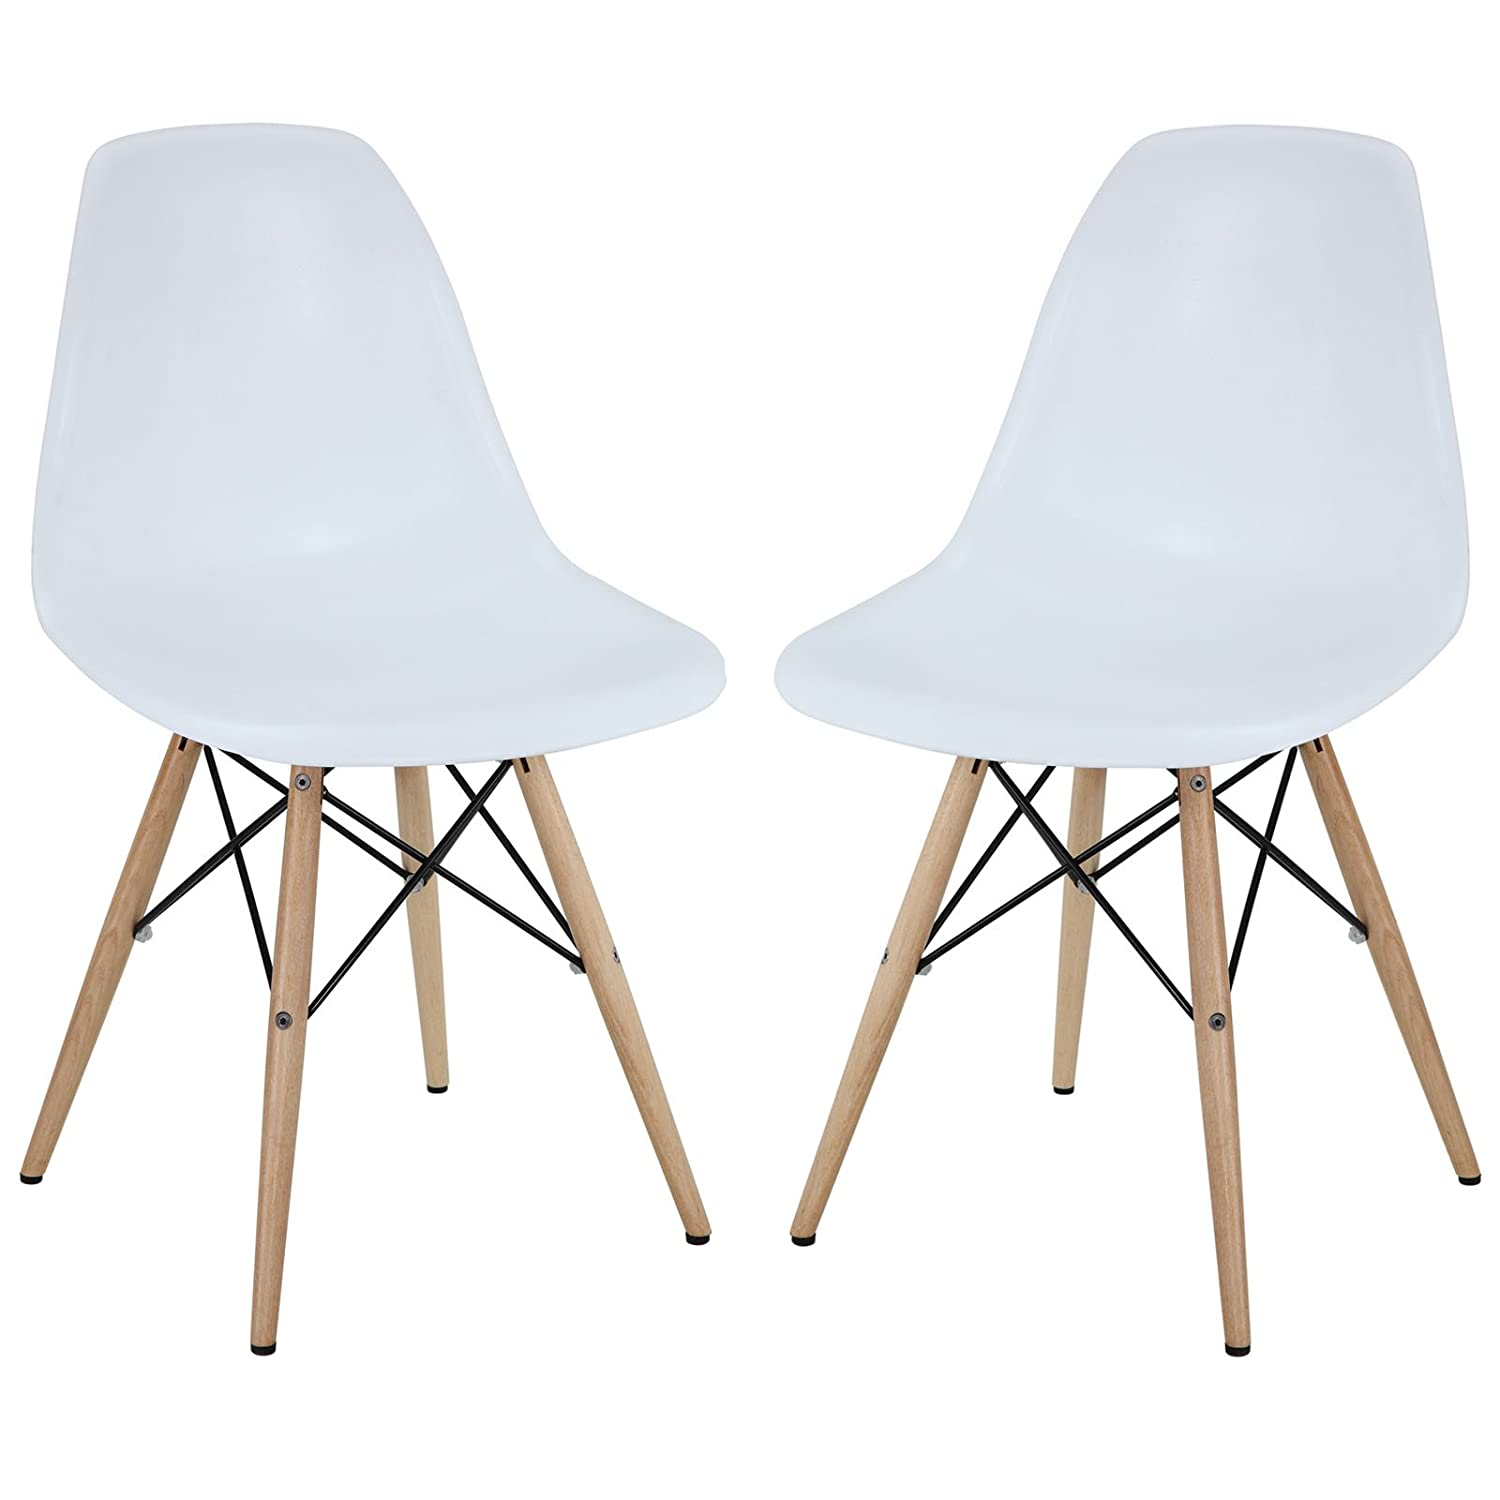 Lovely Amazon.com   Modway Two Plastic Side Chairs In White With Wooden Base    Chairs